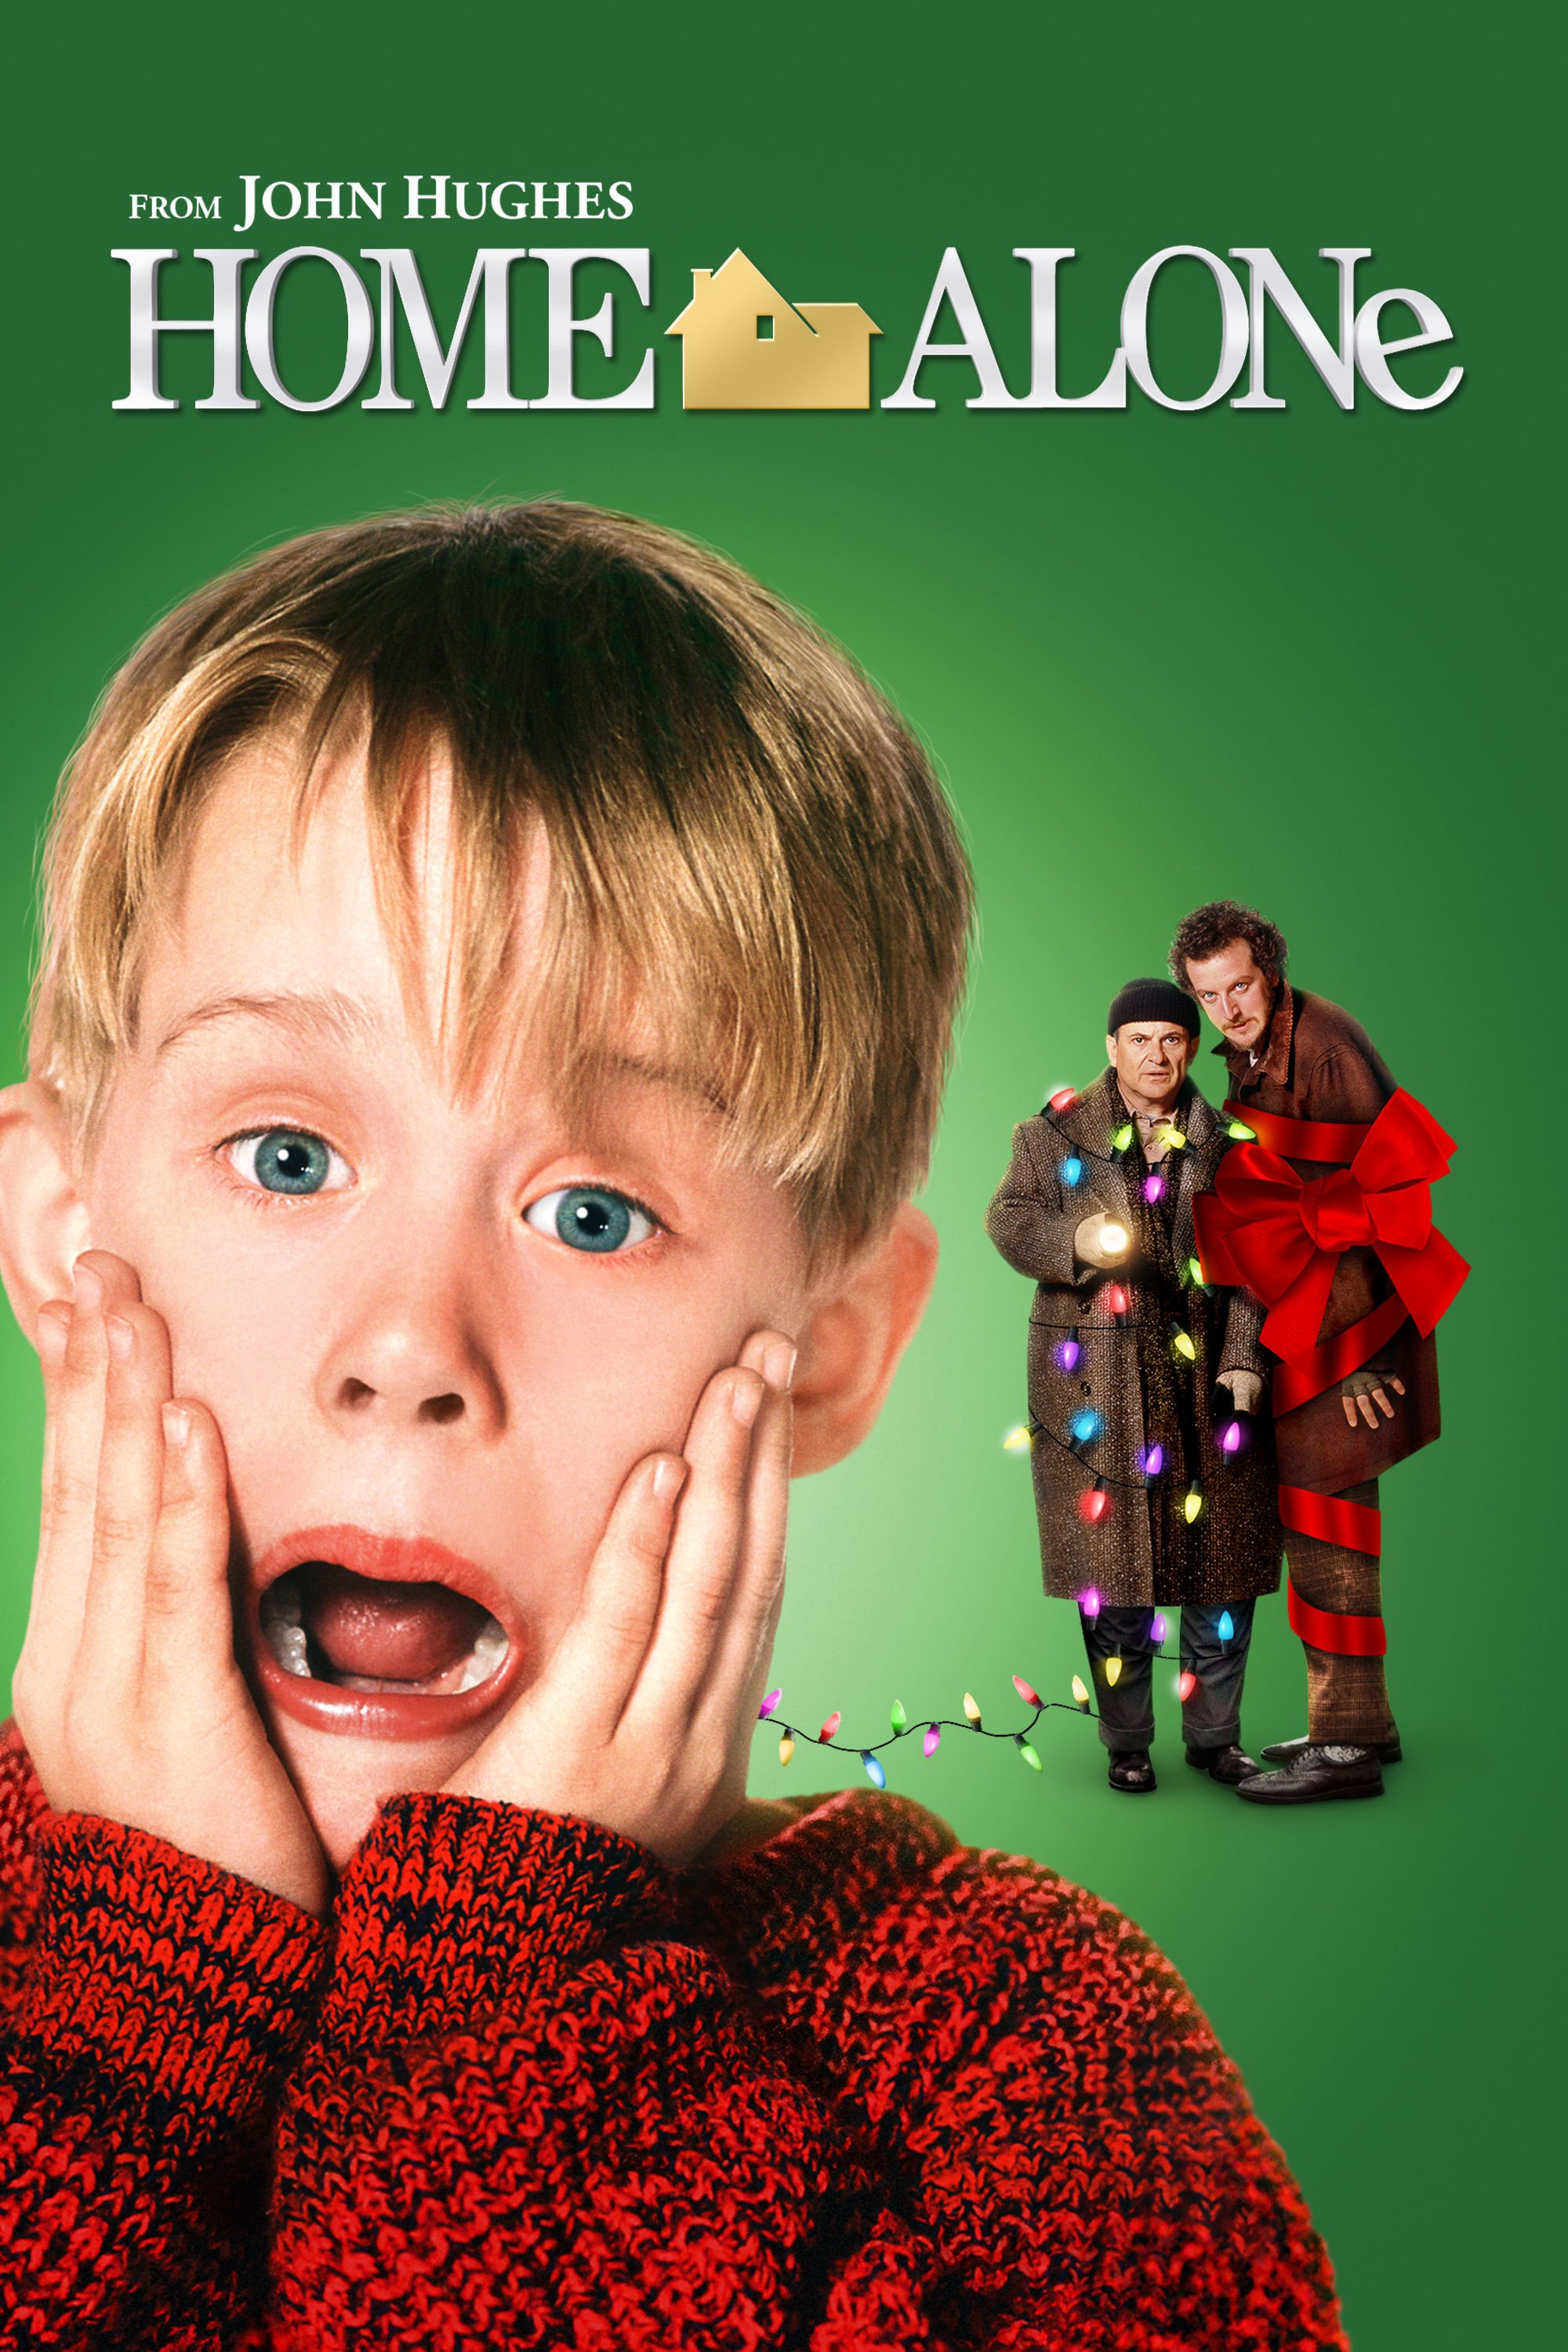 home-alone-filming-locations-poster